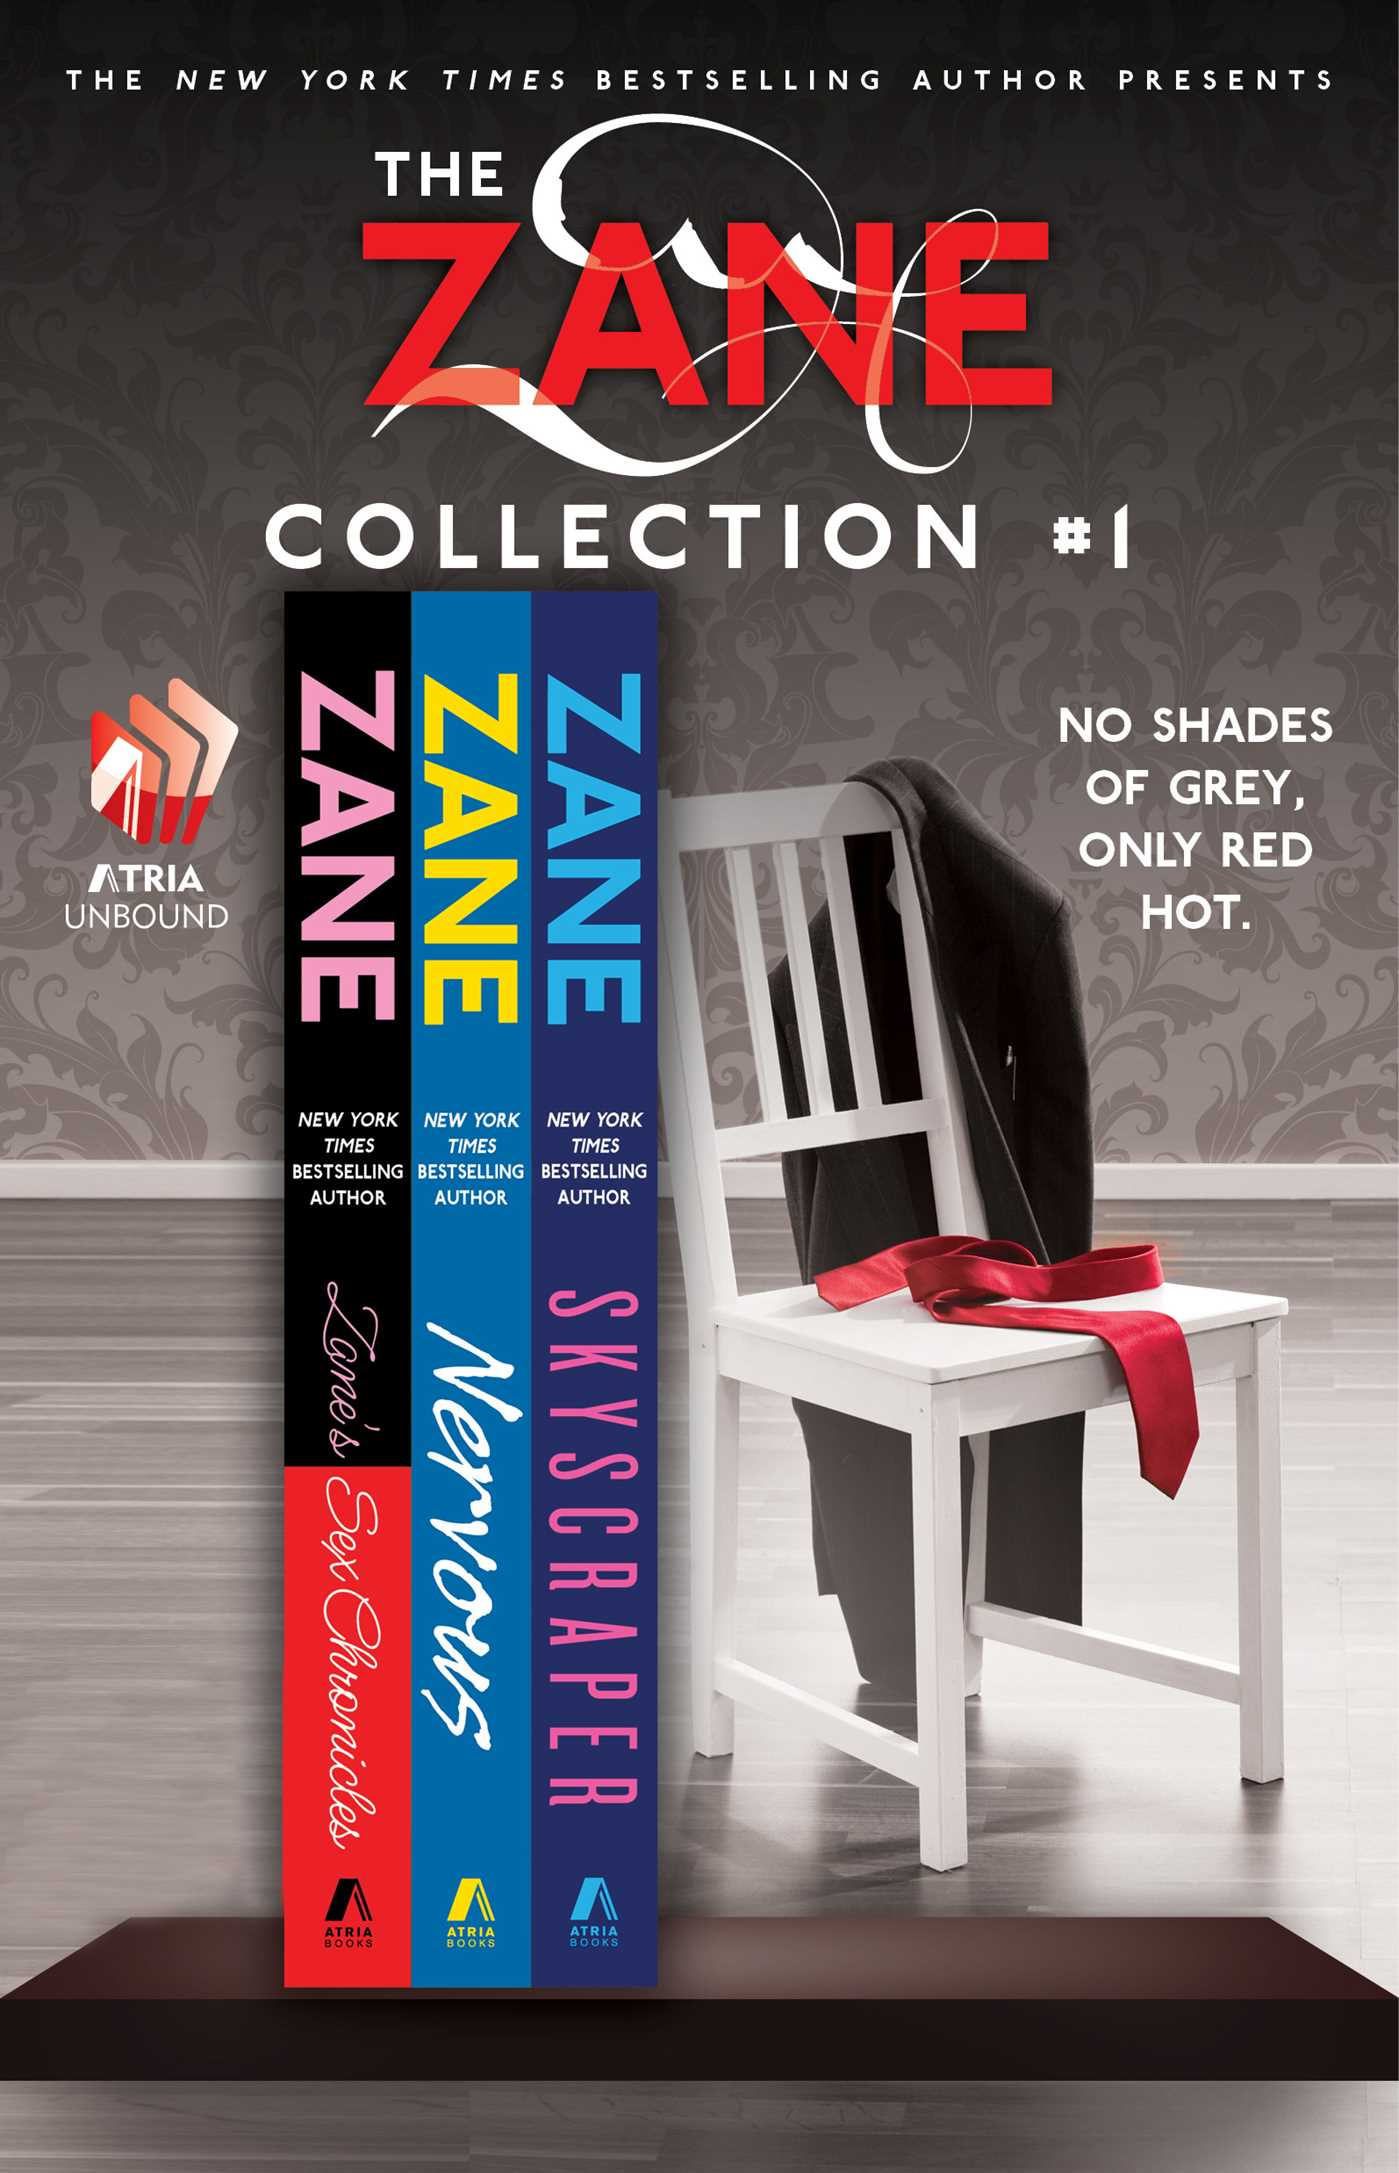 The-zane-collection-1-9781451698930_hr